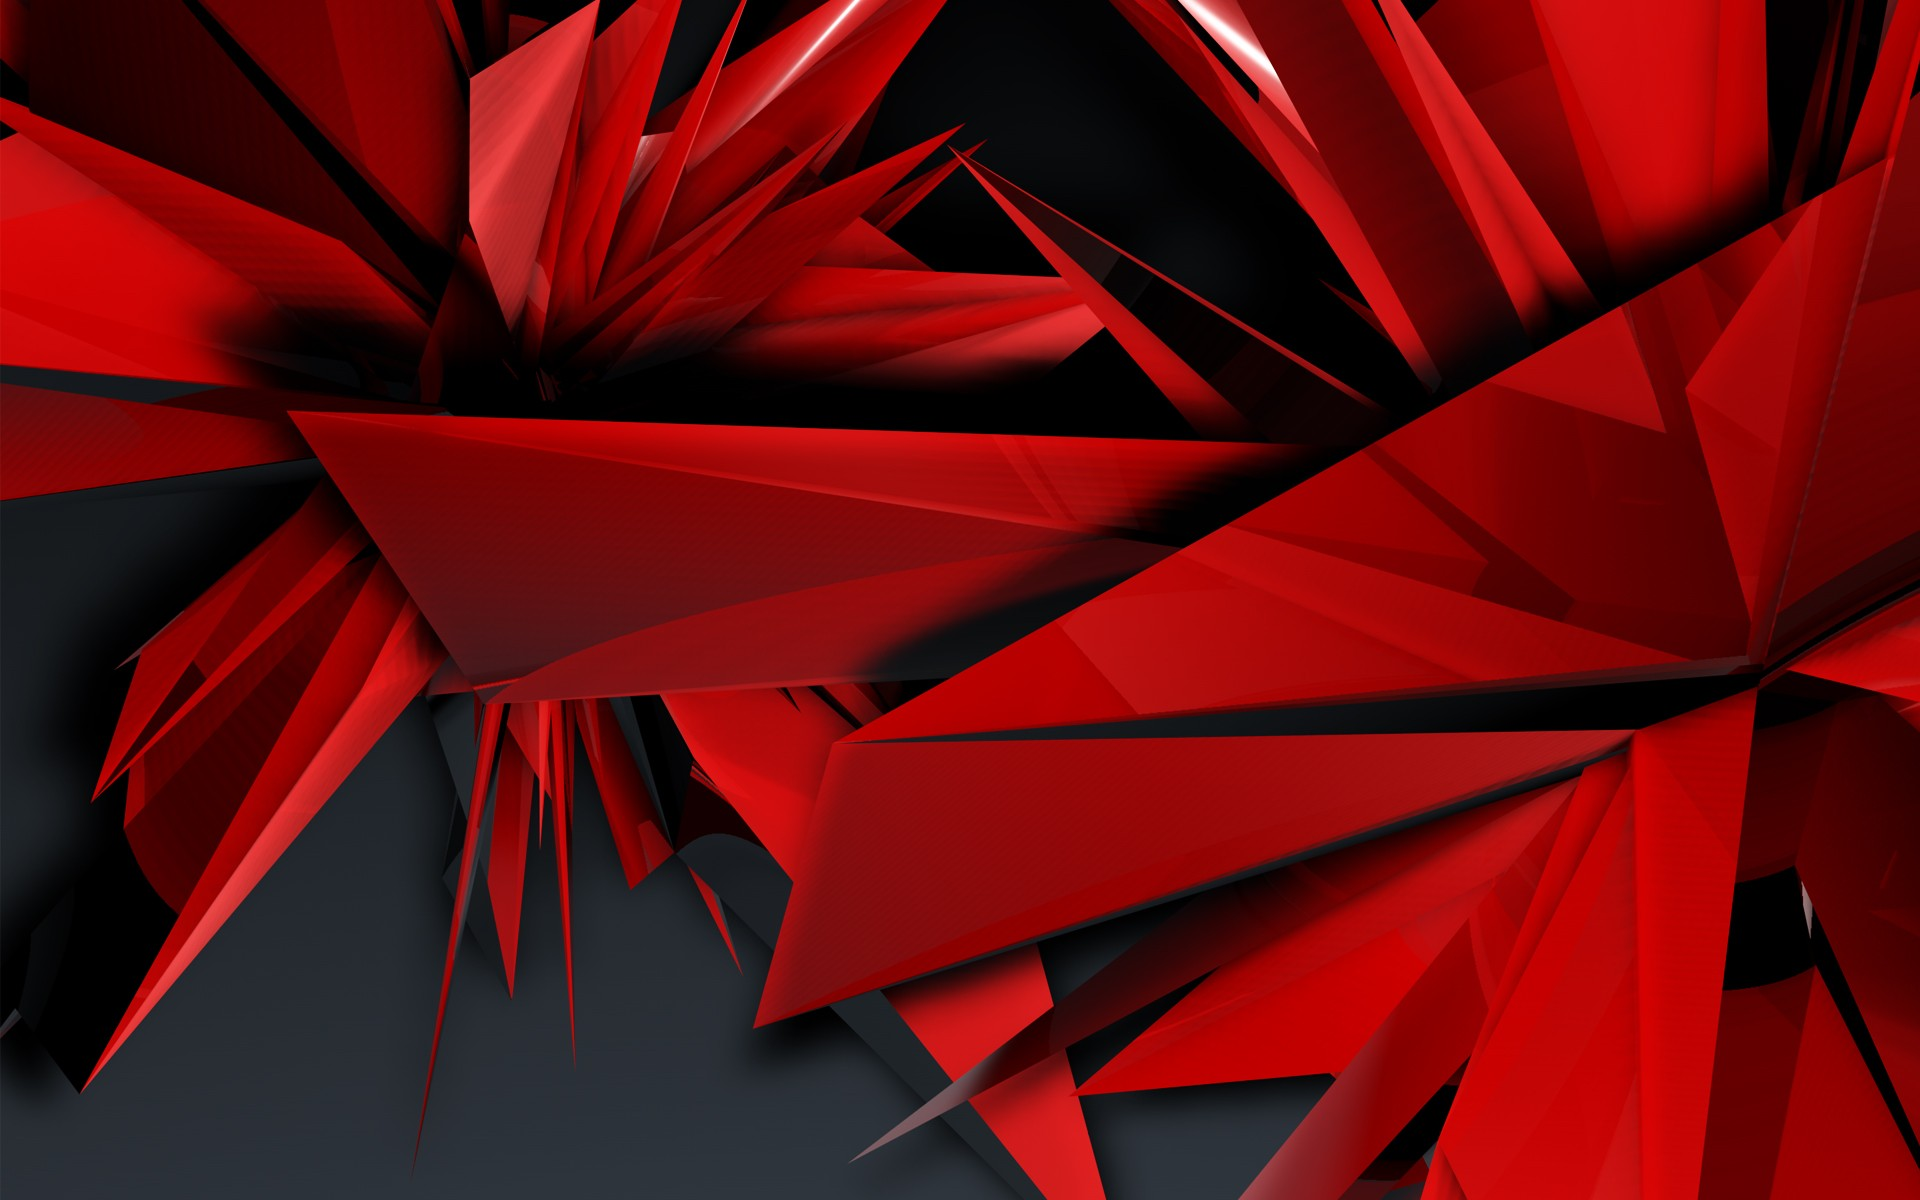 Red Abstrack Wallpapers - The Beggo